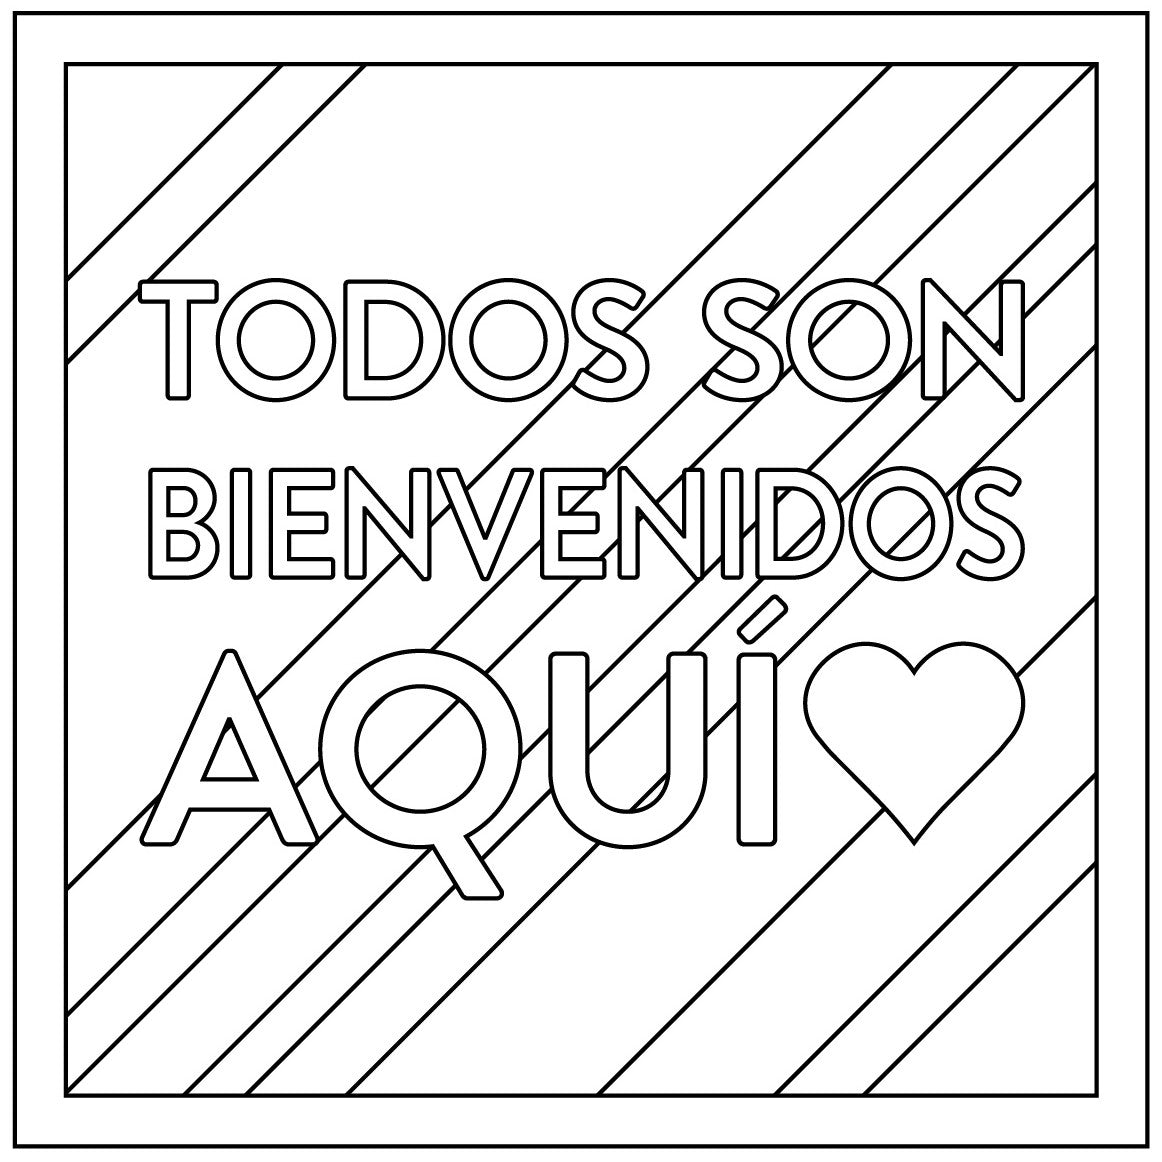 Free Download: Spanish Coloring Sheet